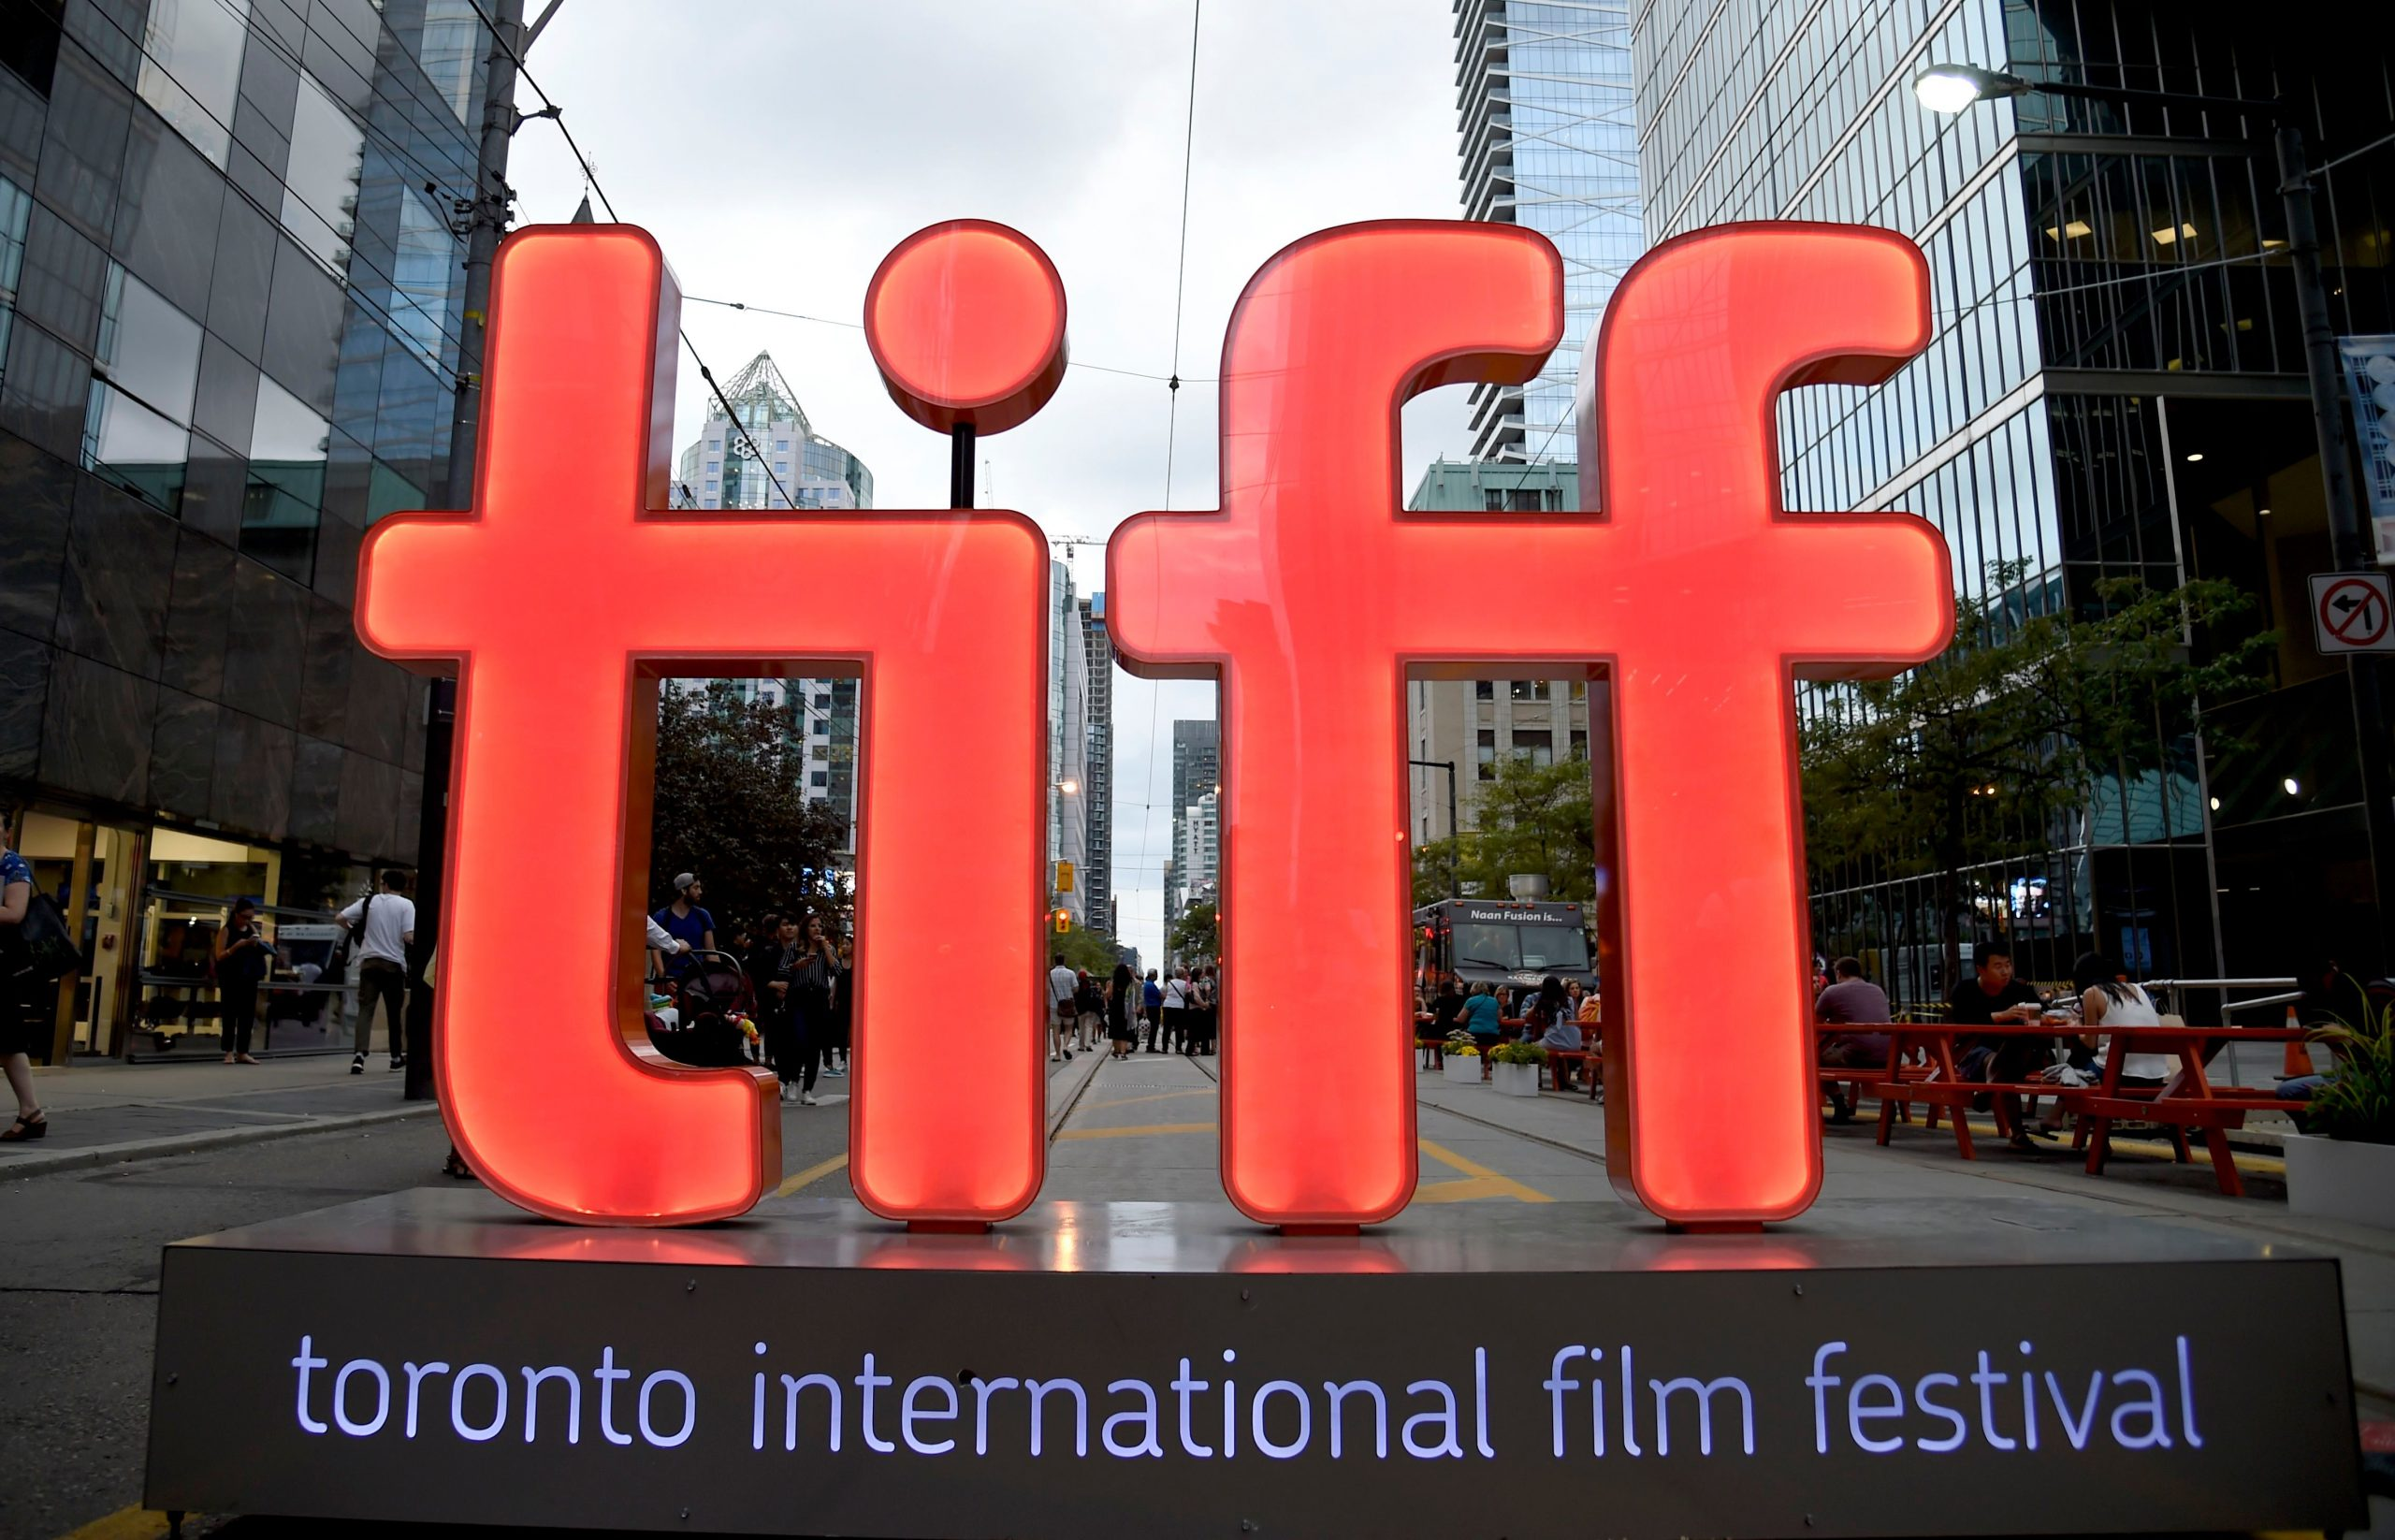 TIFF 2021 Announces First 12 Films, In-person Screenings, and a Dune IMAX Event